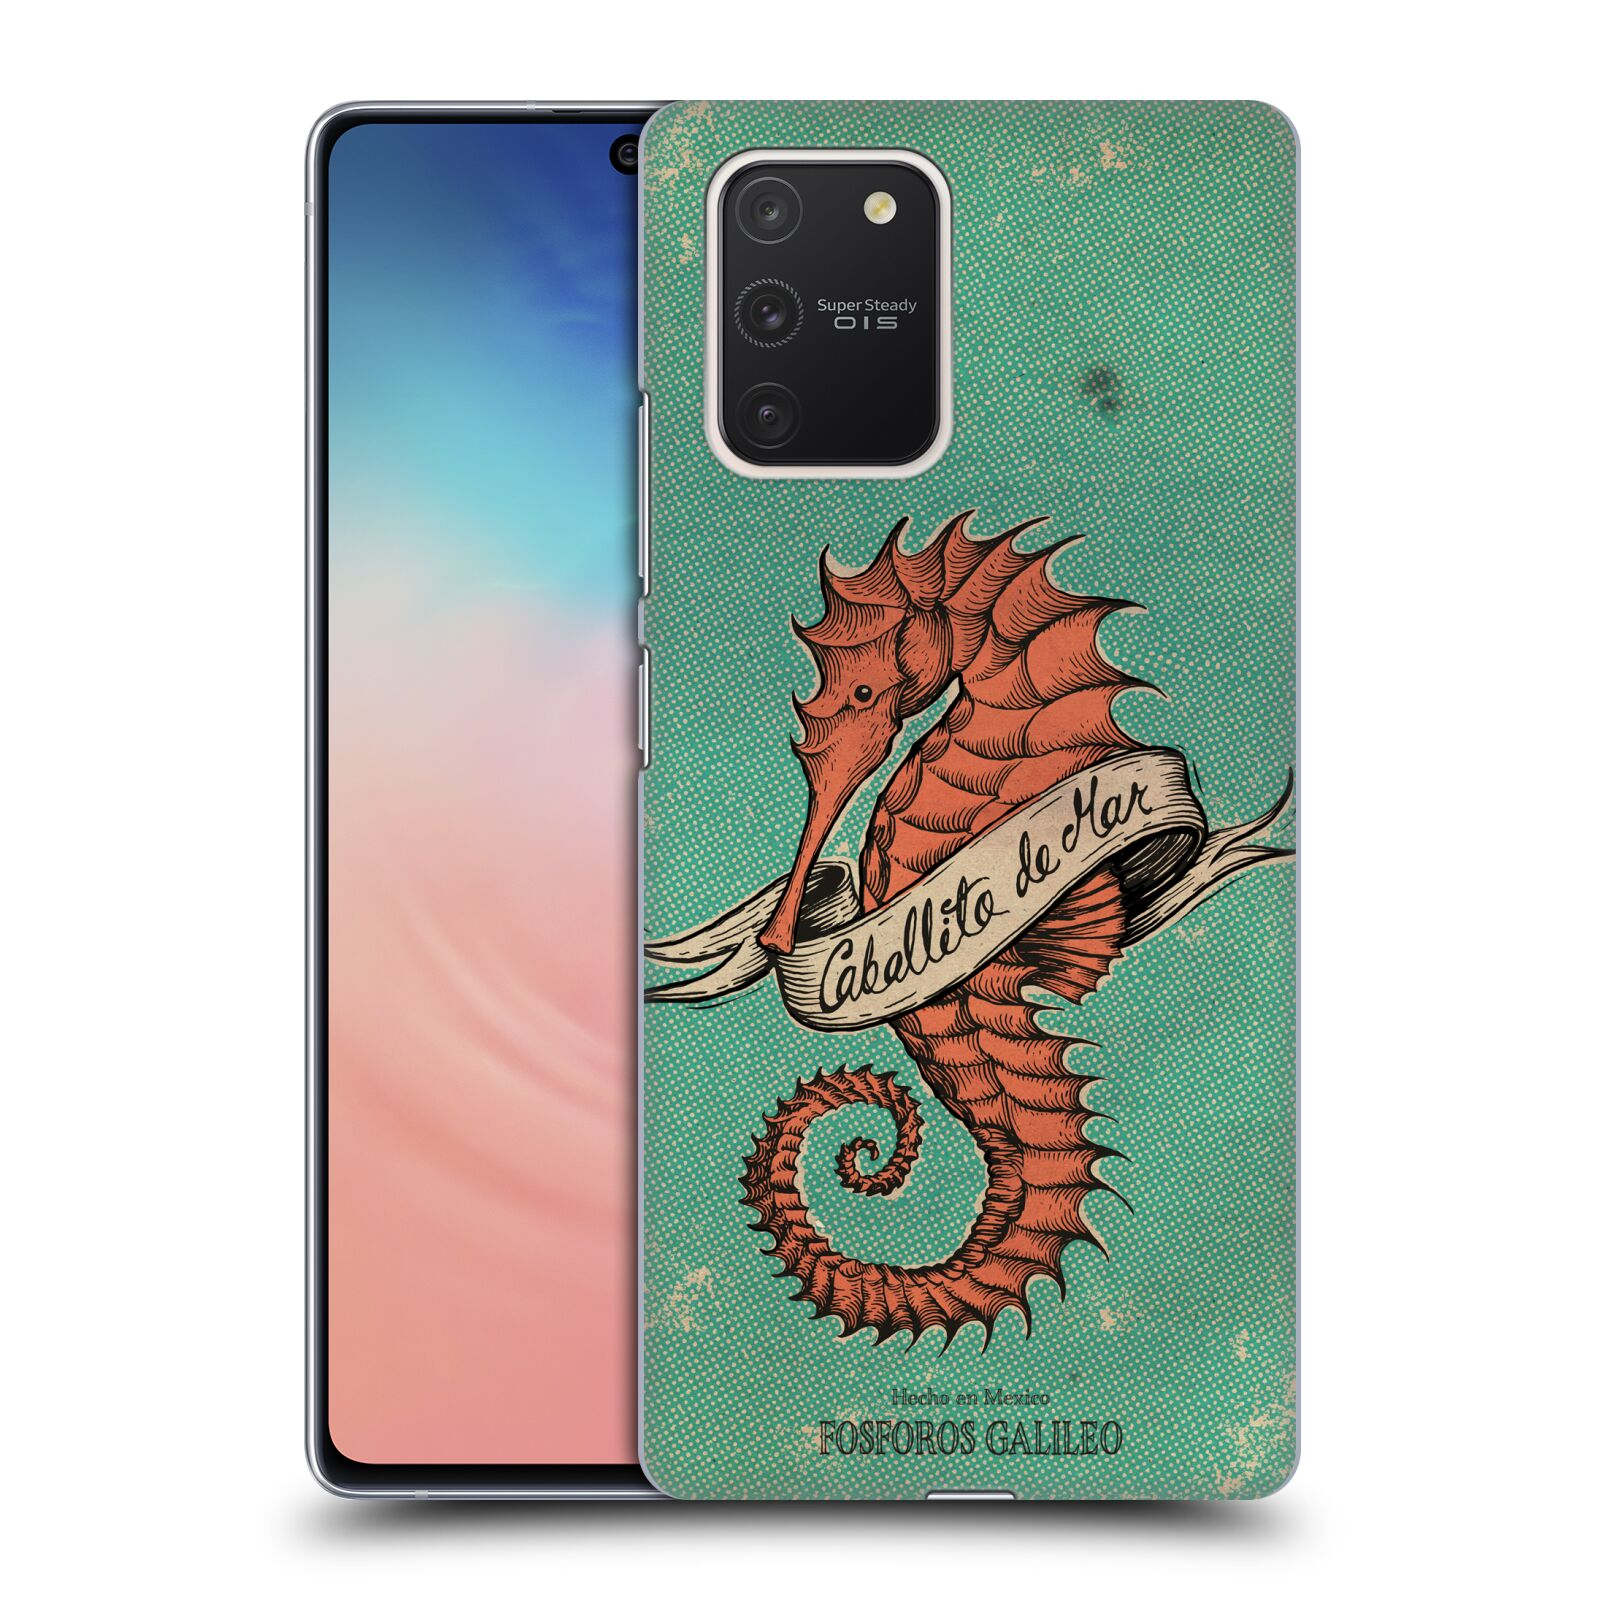 Official Fosforos Galileo Diseños Caballito De Mar Case for Samsung Galaxy S10 Lite